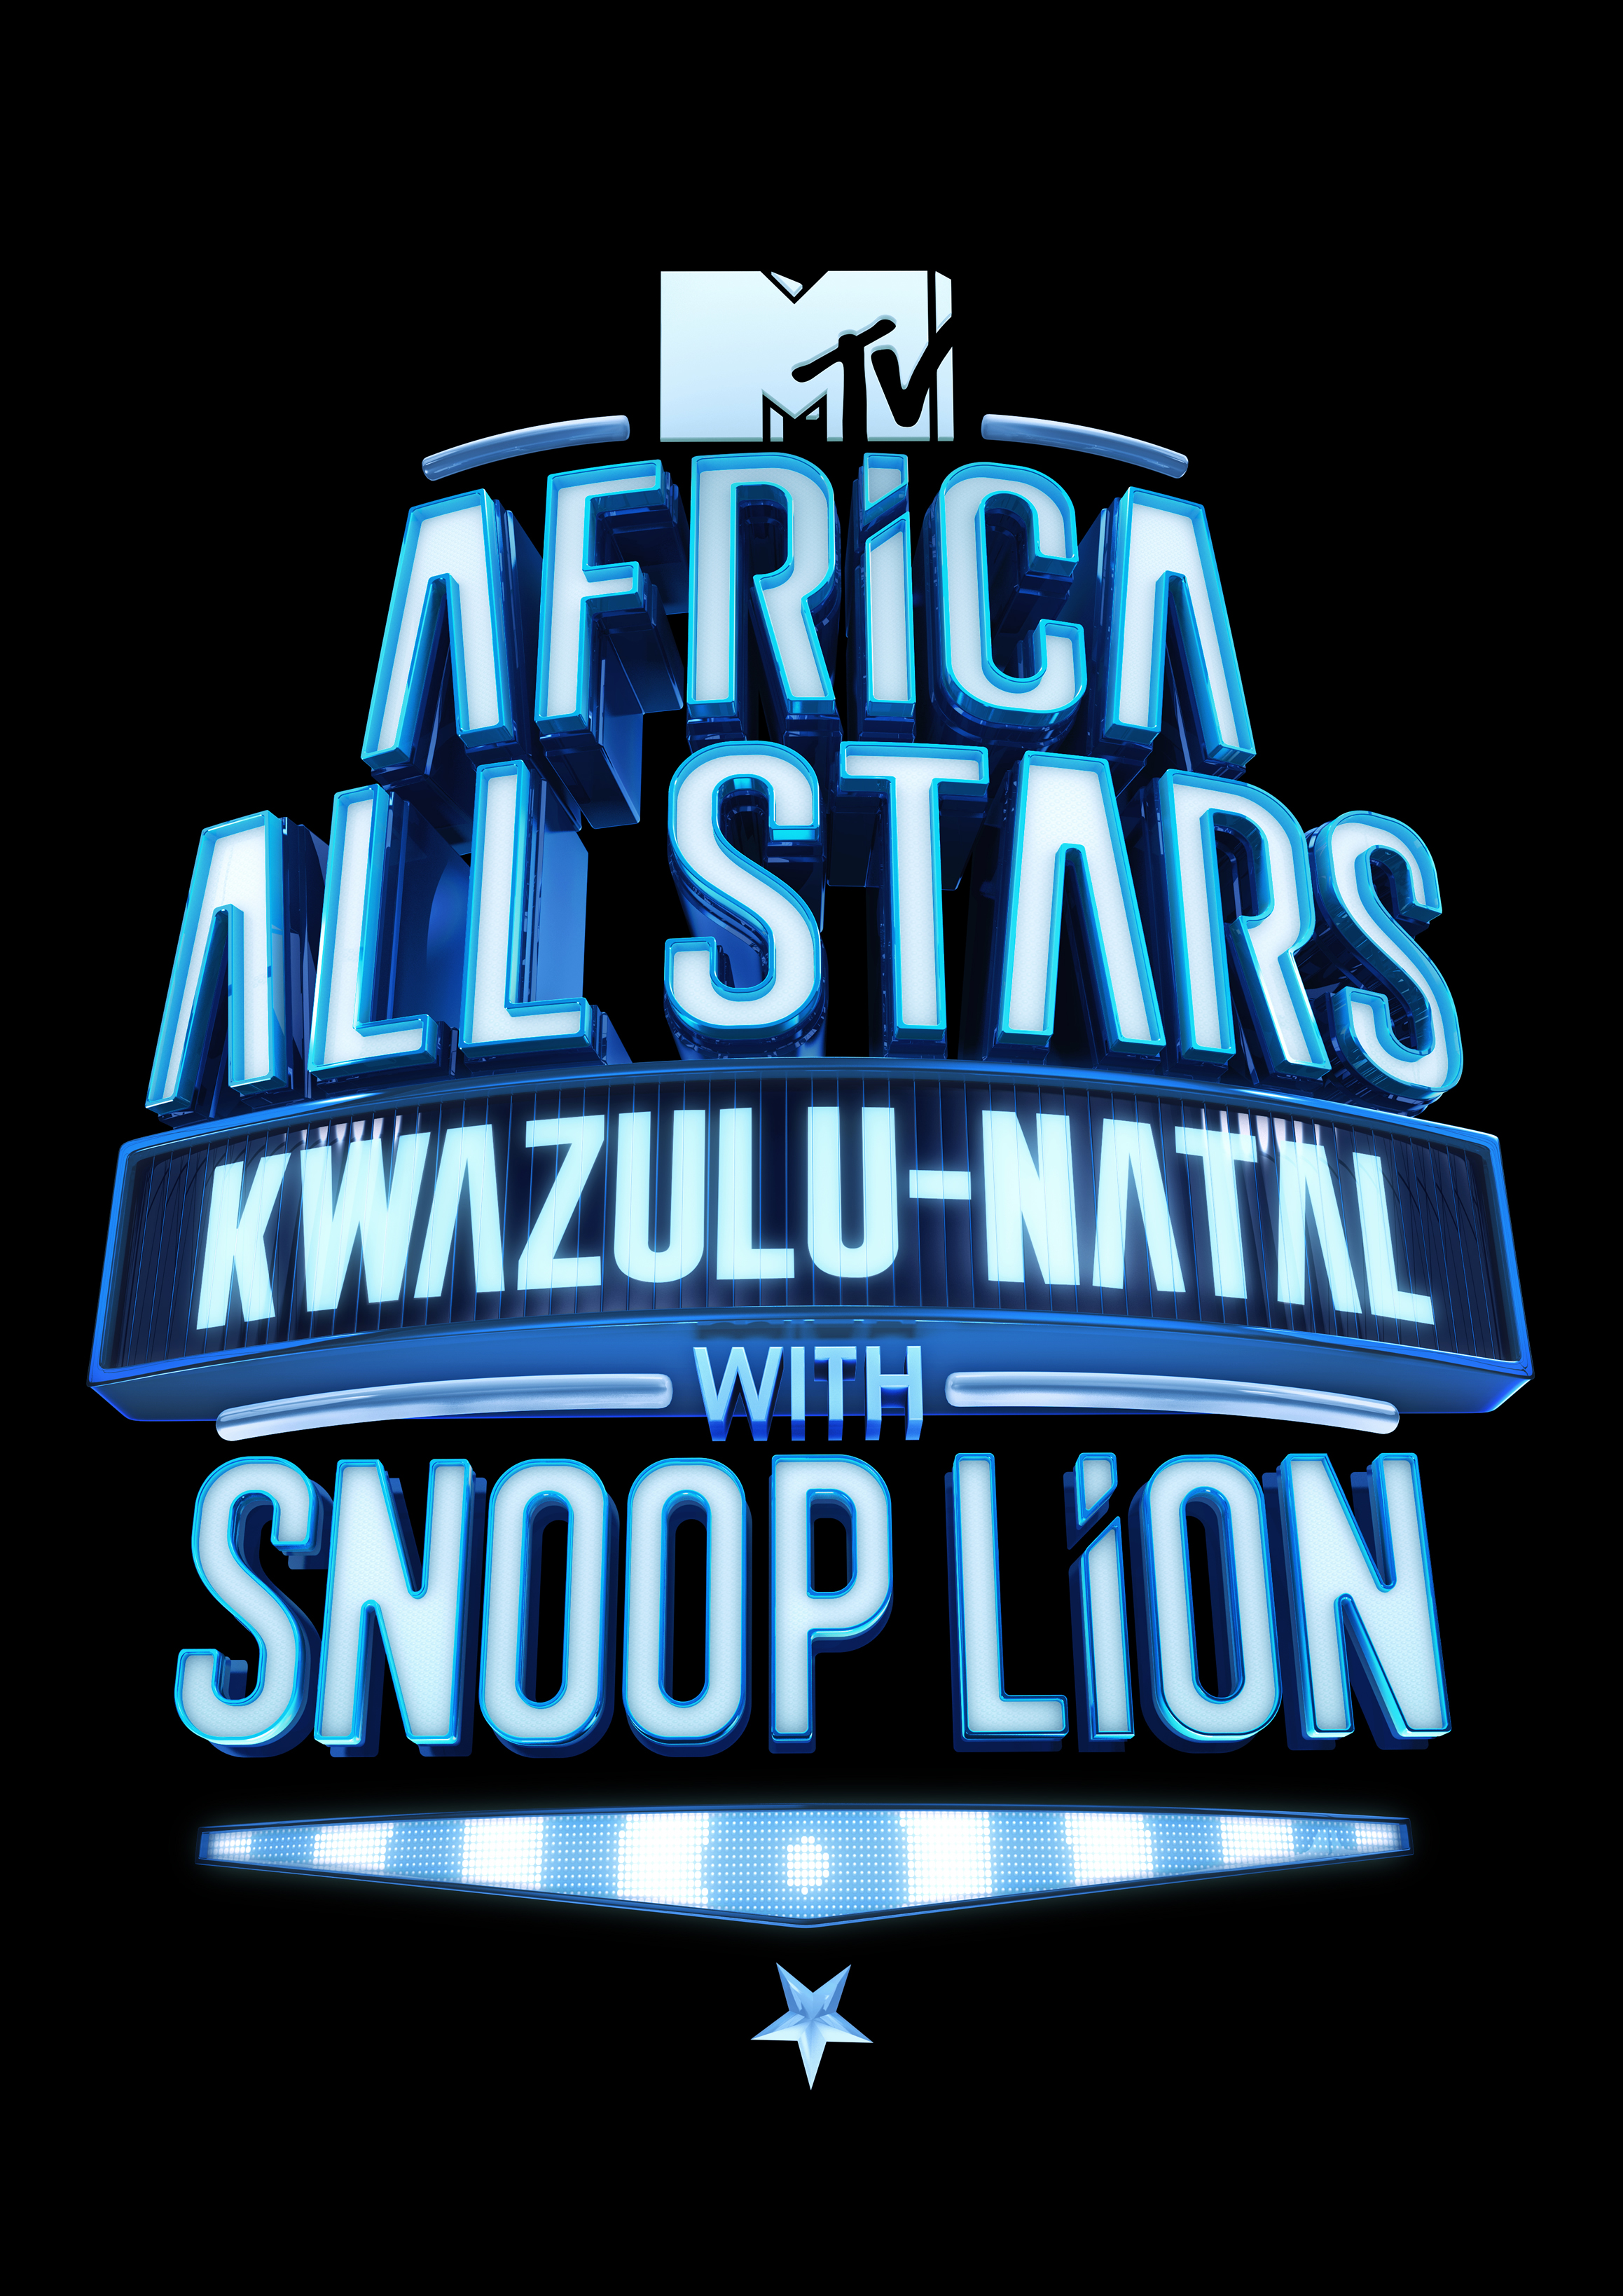 MTV Africa ALL STARS Concert featuring SNOOP LION